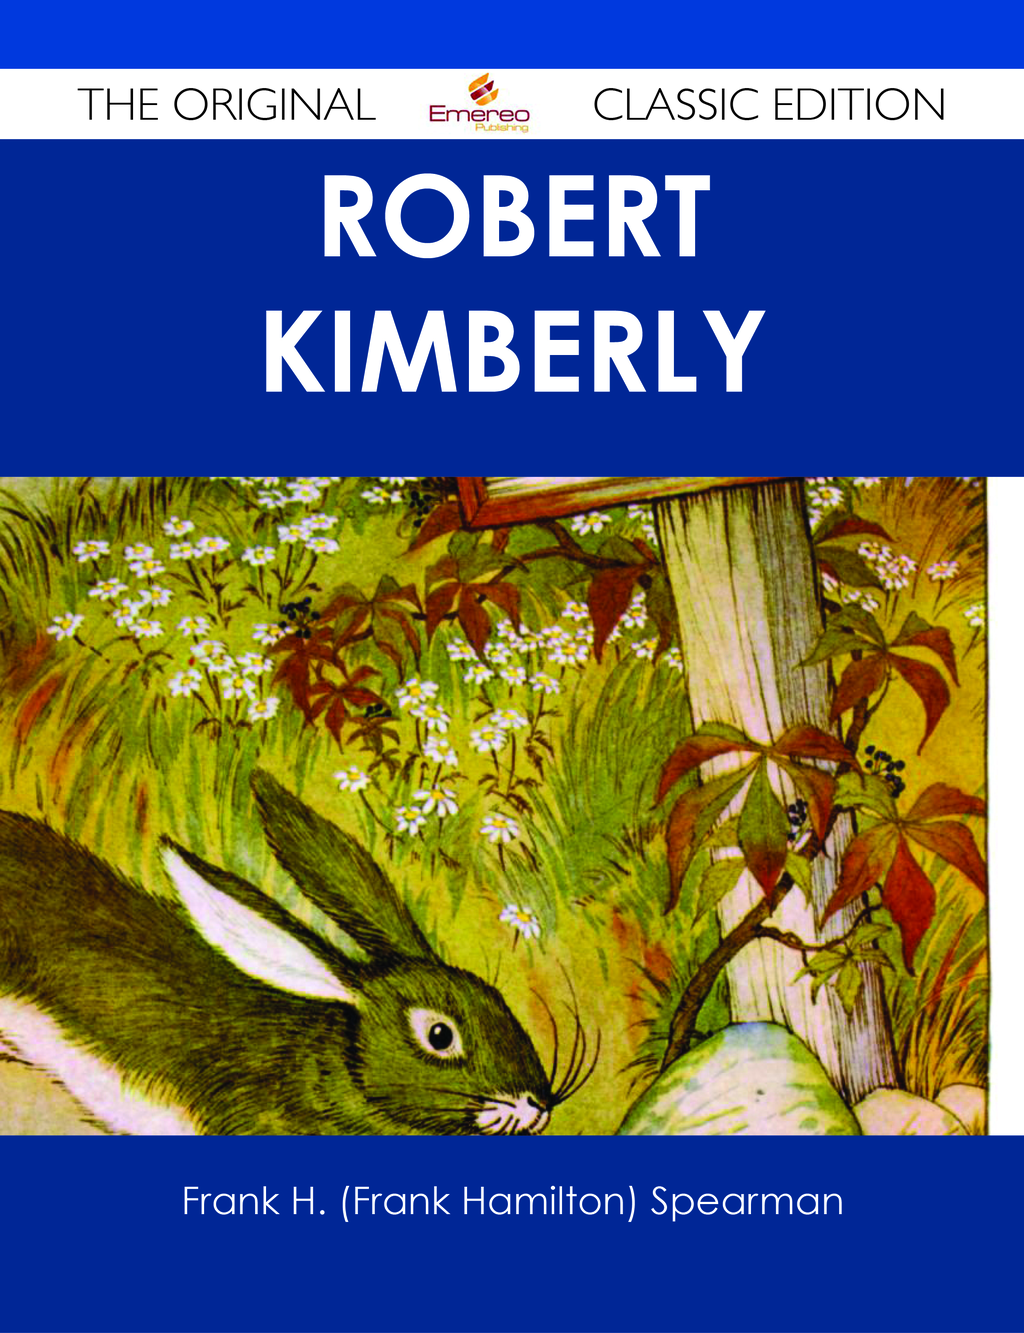 Robert Kimberly - The Original Classic Edition